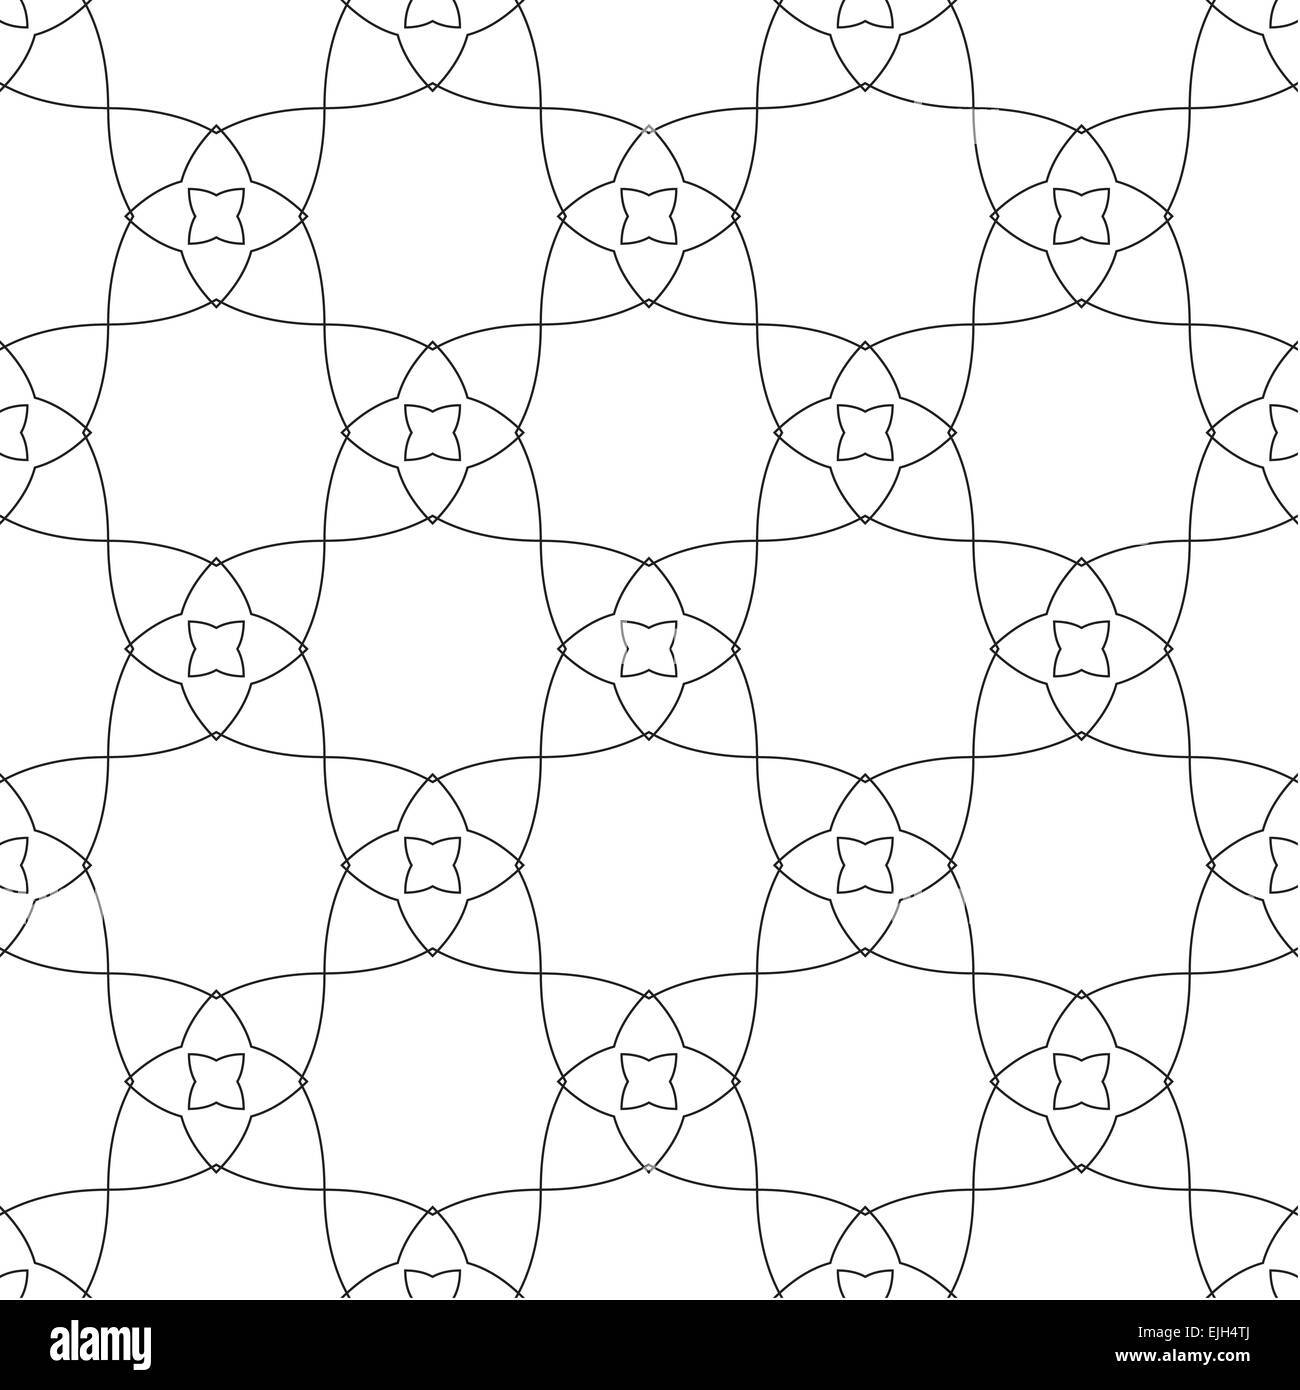 Symmetrical Geometric Shapes Black And White Floral Vector Textile  Backdrop. Can Be Use As Fabric, Tablecloth Pattern.